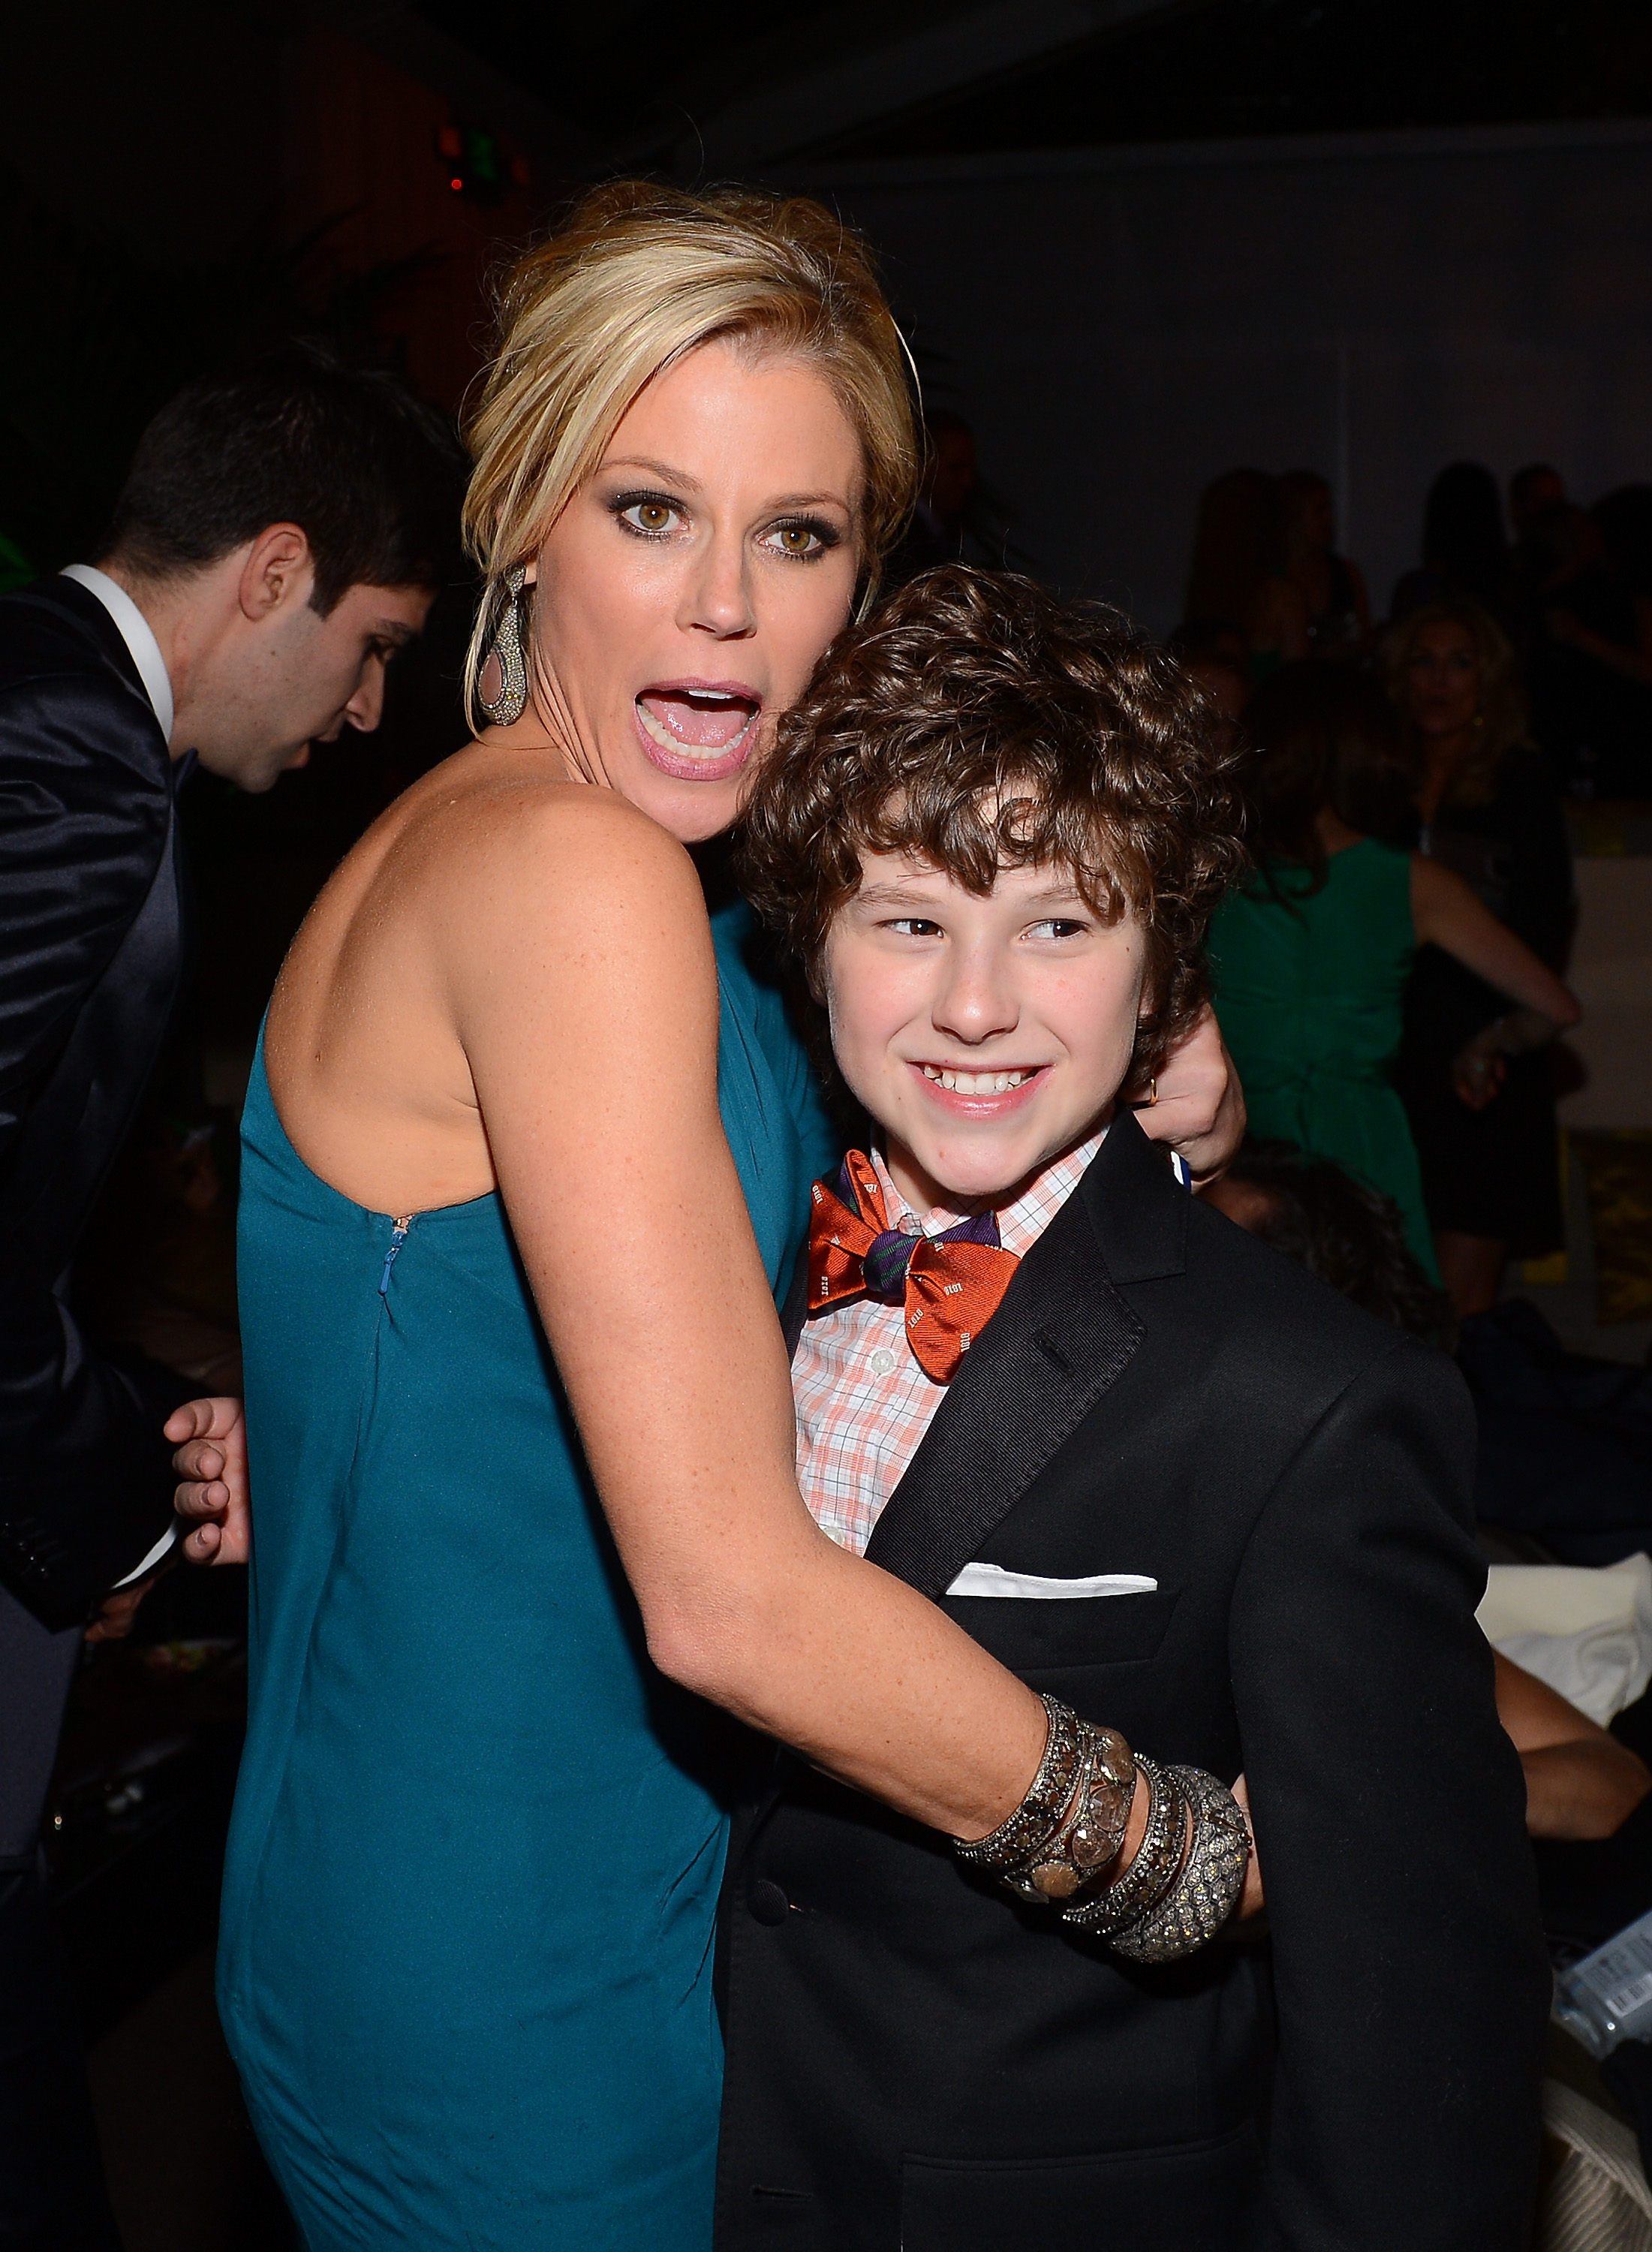 Costars Julie Bowen and Nolan Gould got silly at a Golden Globes after party.